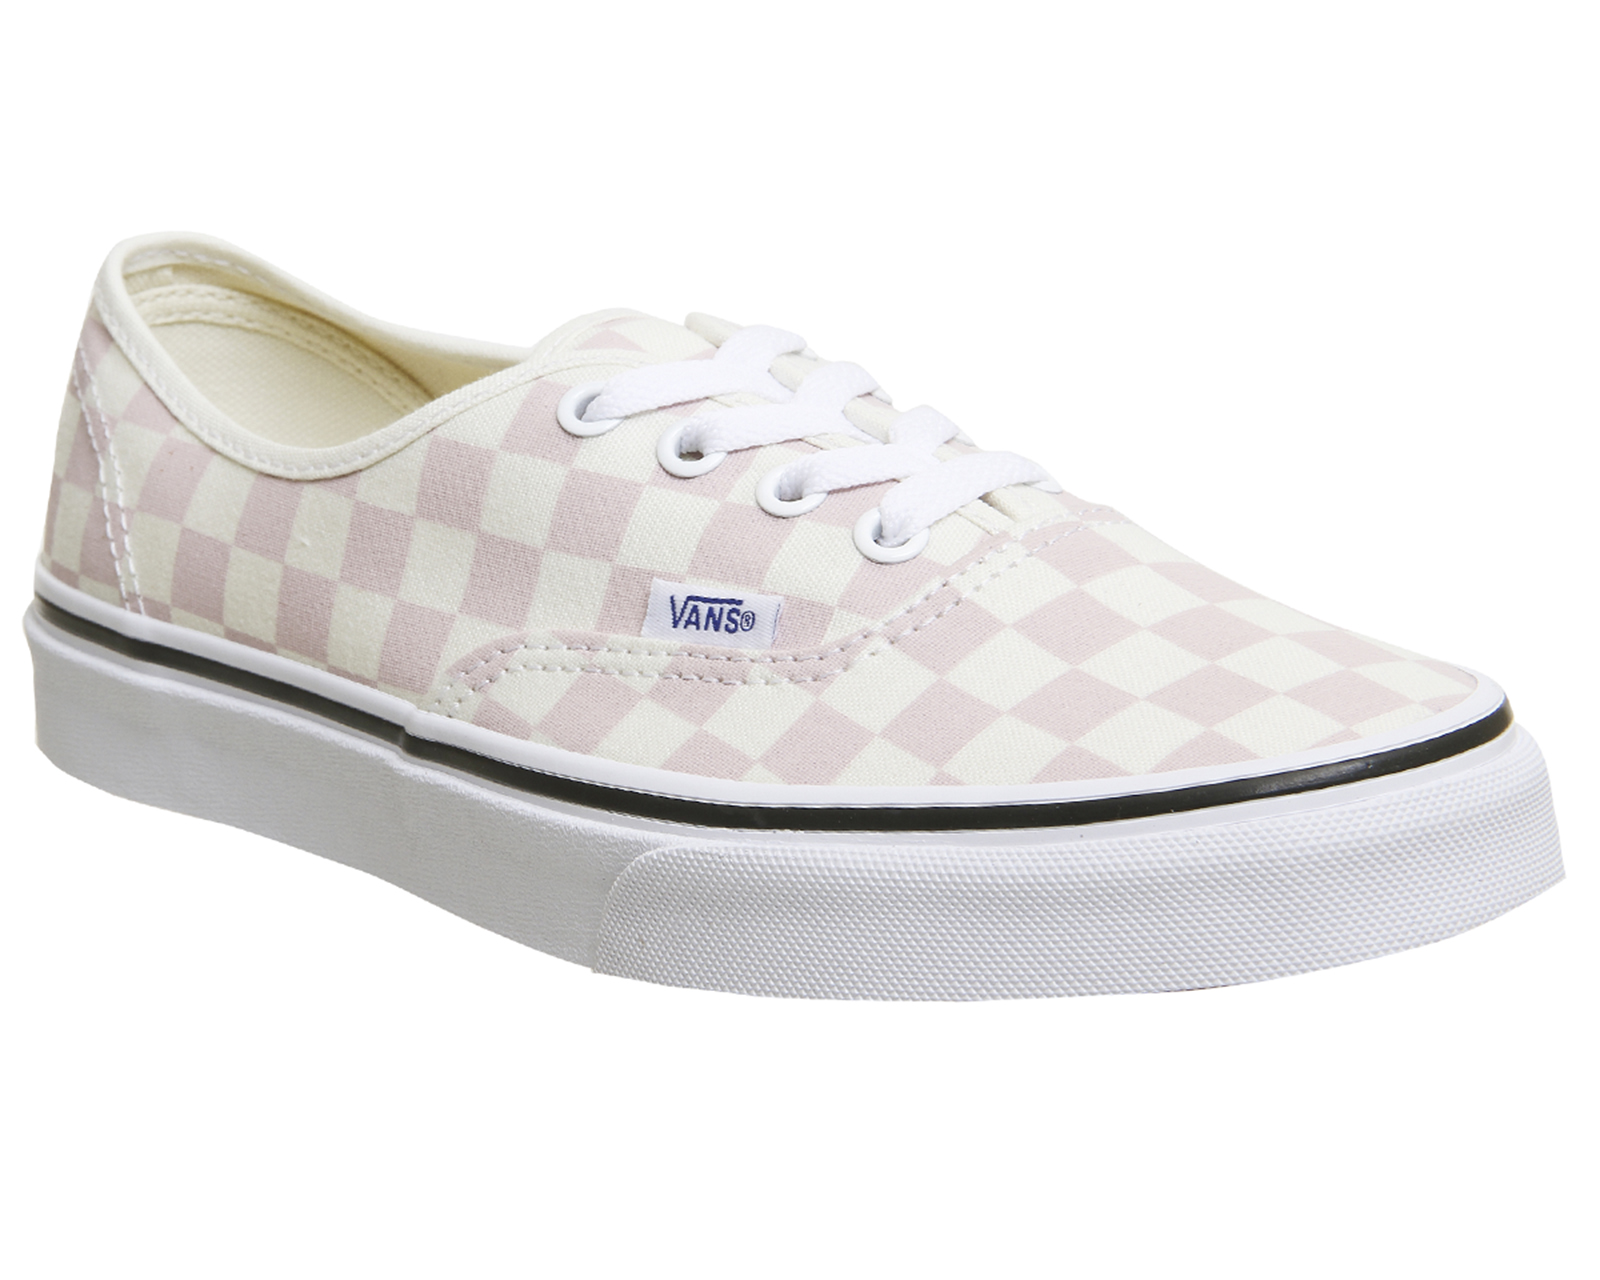 04c1473a1d Sentinel Vans Authentic Trainers LIGHT PINK WHITE CHECKERBOARD Trainers  Shoes